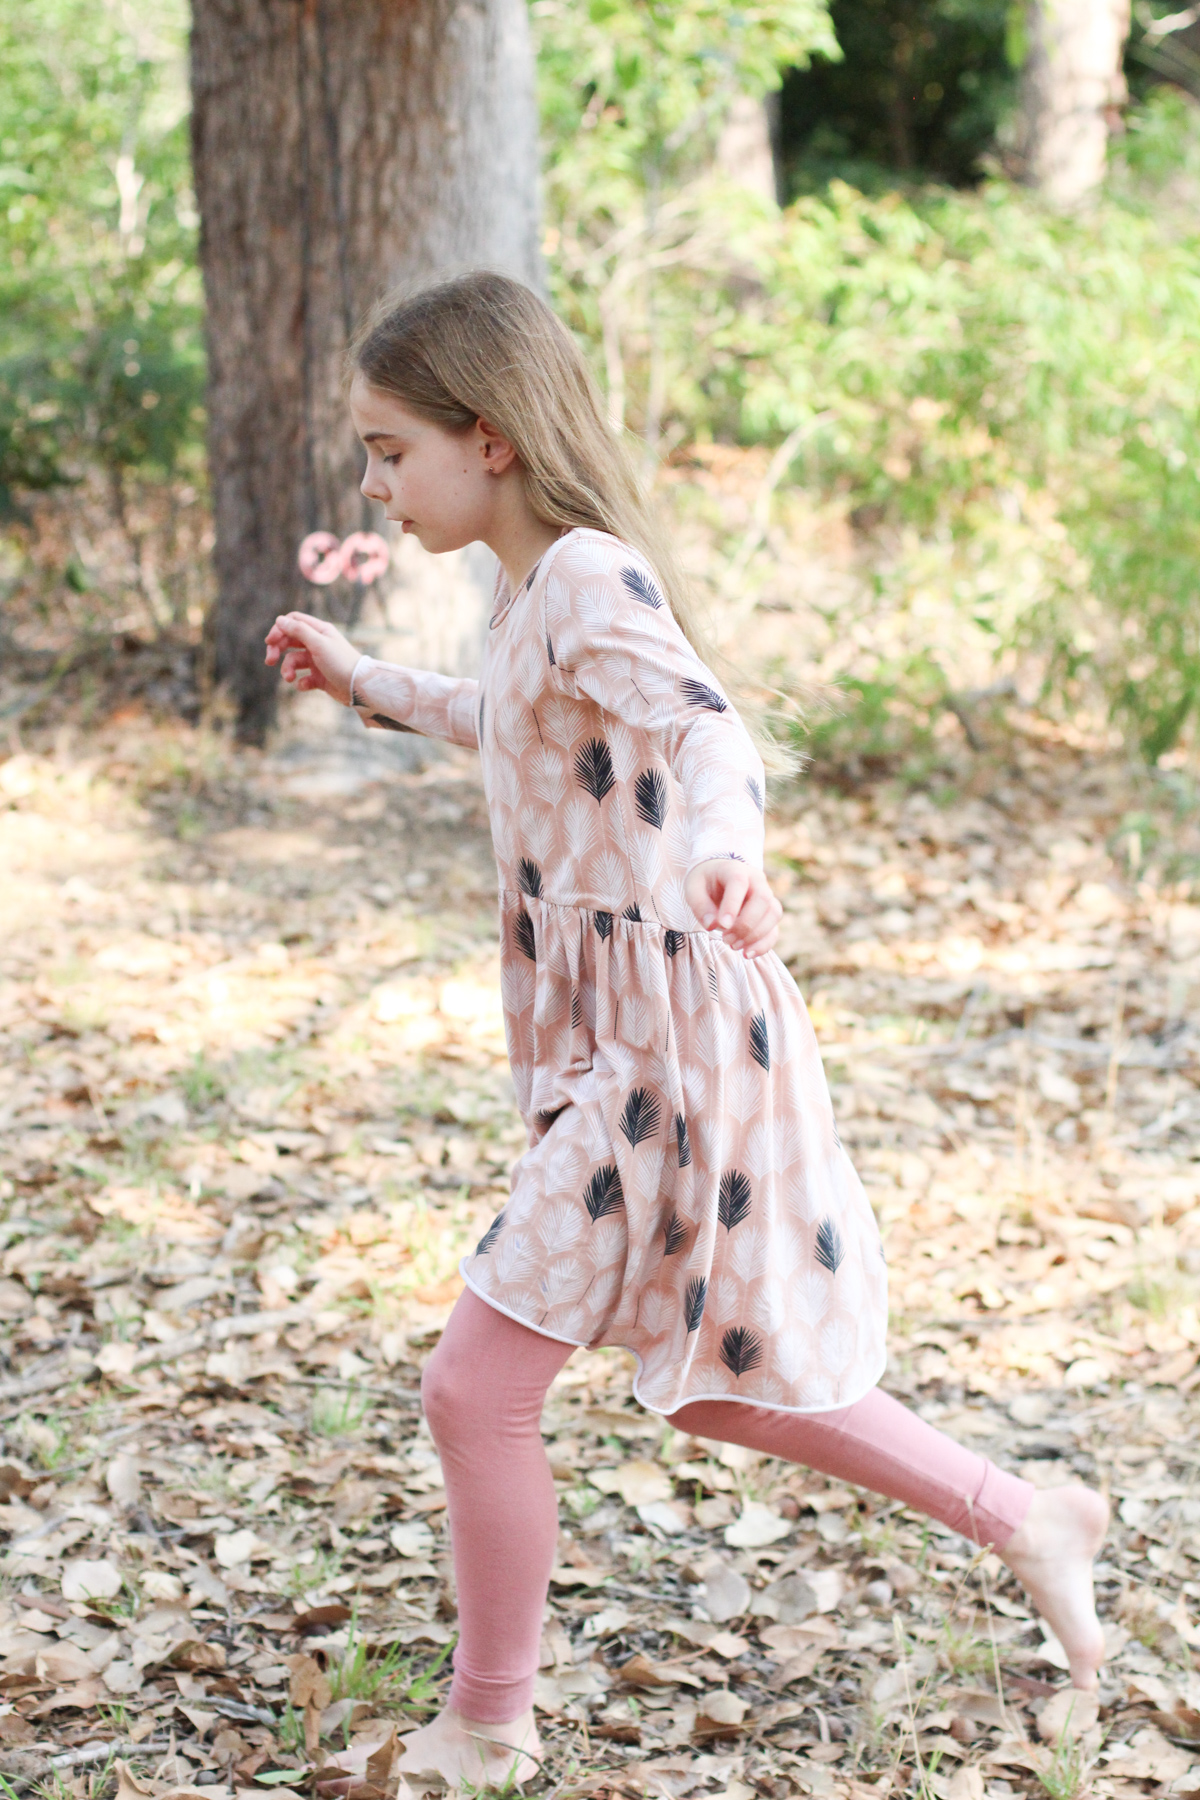 Bunny's Briar dress using Nosh Organics feather print organic cotton jersey // Megan Nielsen Design Diary